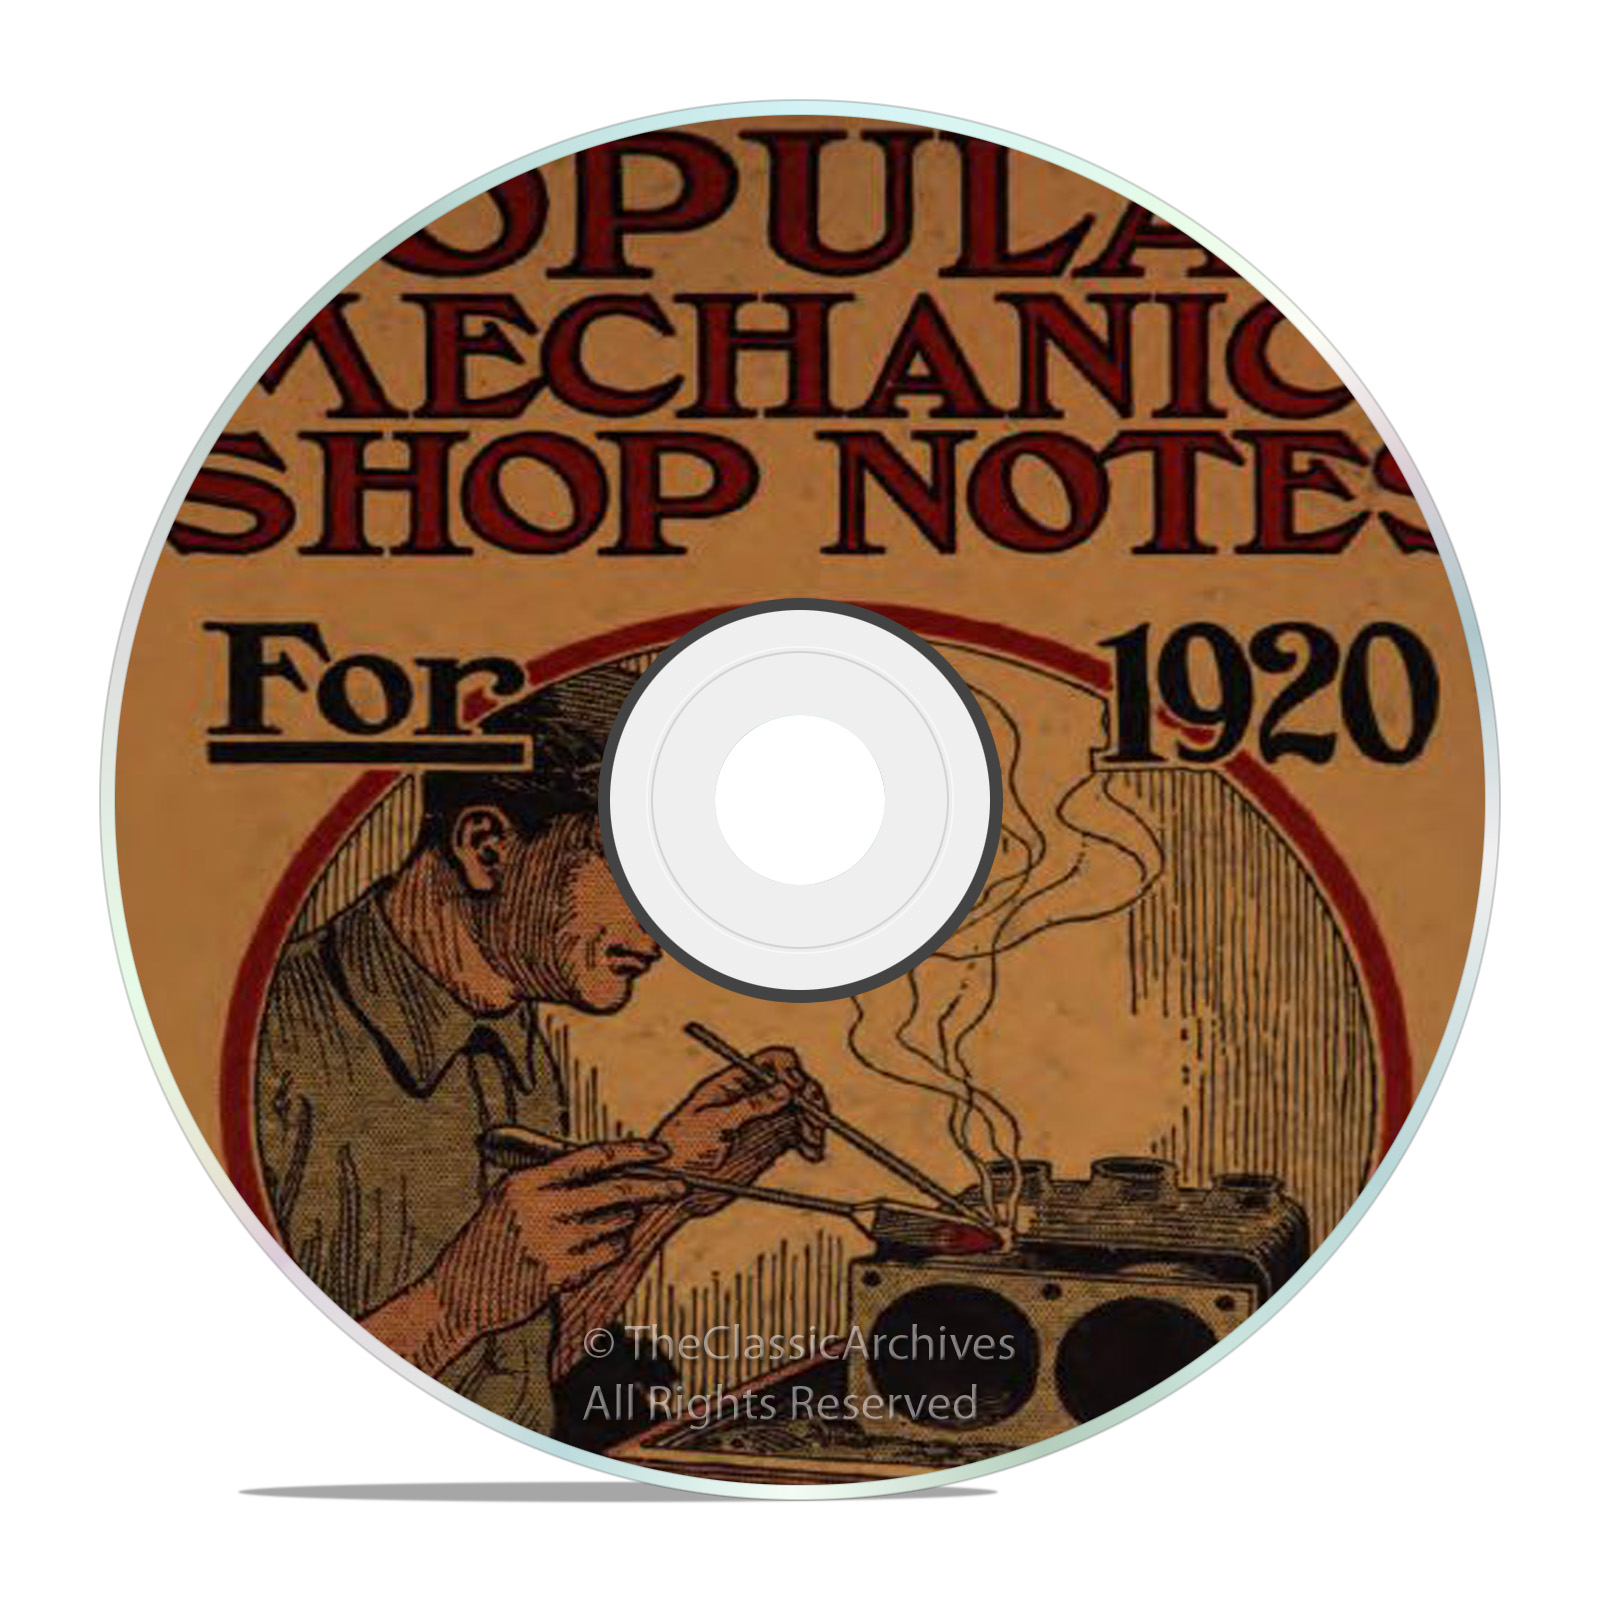 Vintage Popular Mechanics Shop Notes, 1905-21, 12 Classic Magazine Issues